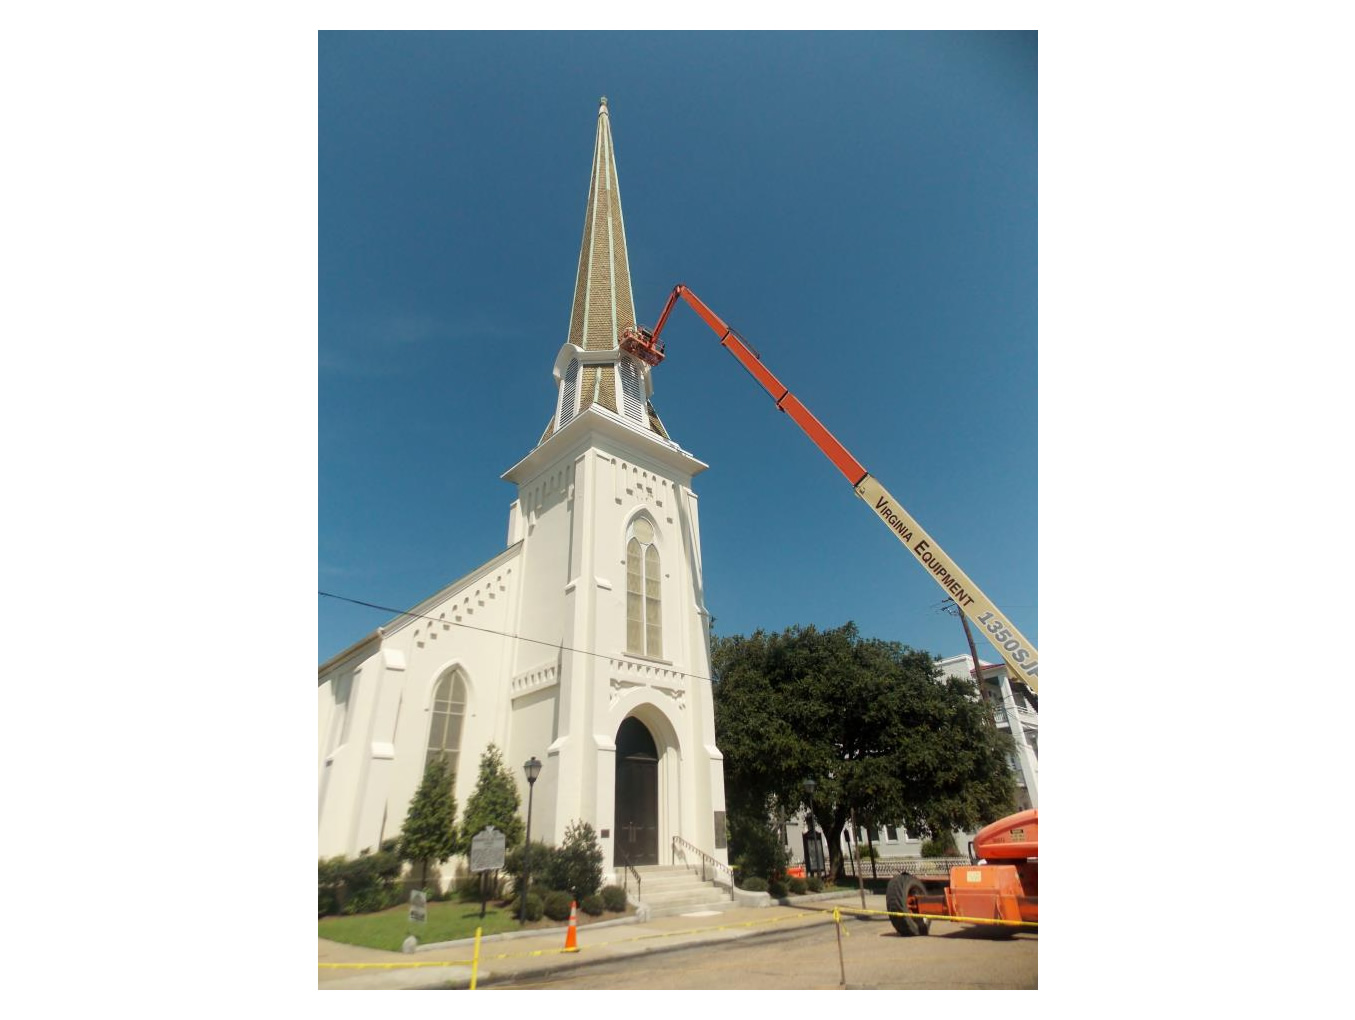 Commercial: Monumental United Methodist Church, Portsmouth, VA